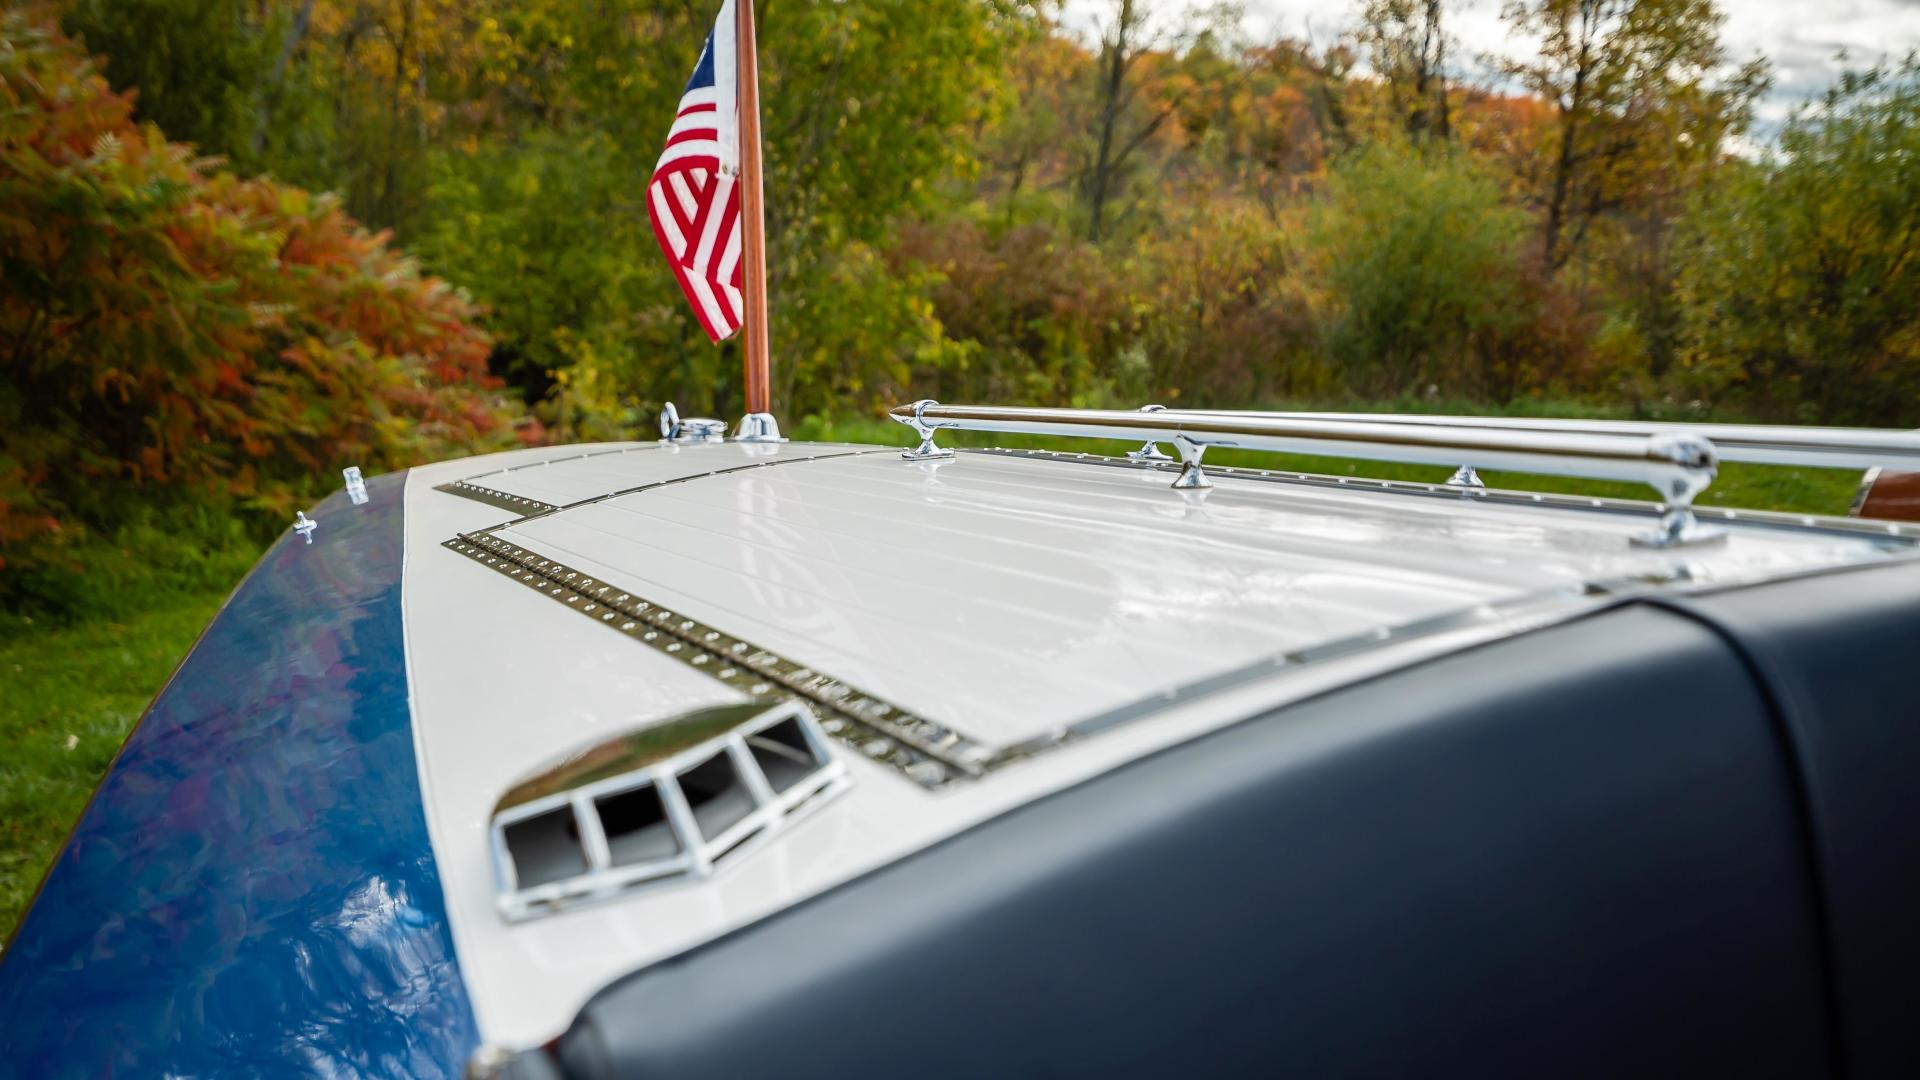 Chris-Craft-Special Race boat 1937 -Clayton-New York-United States-1546456 | Thumbnail